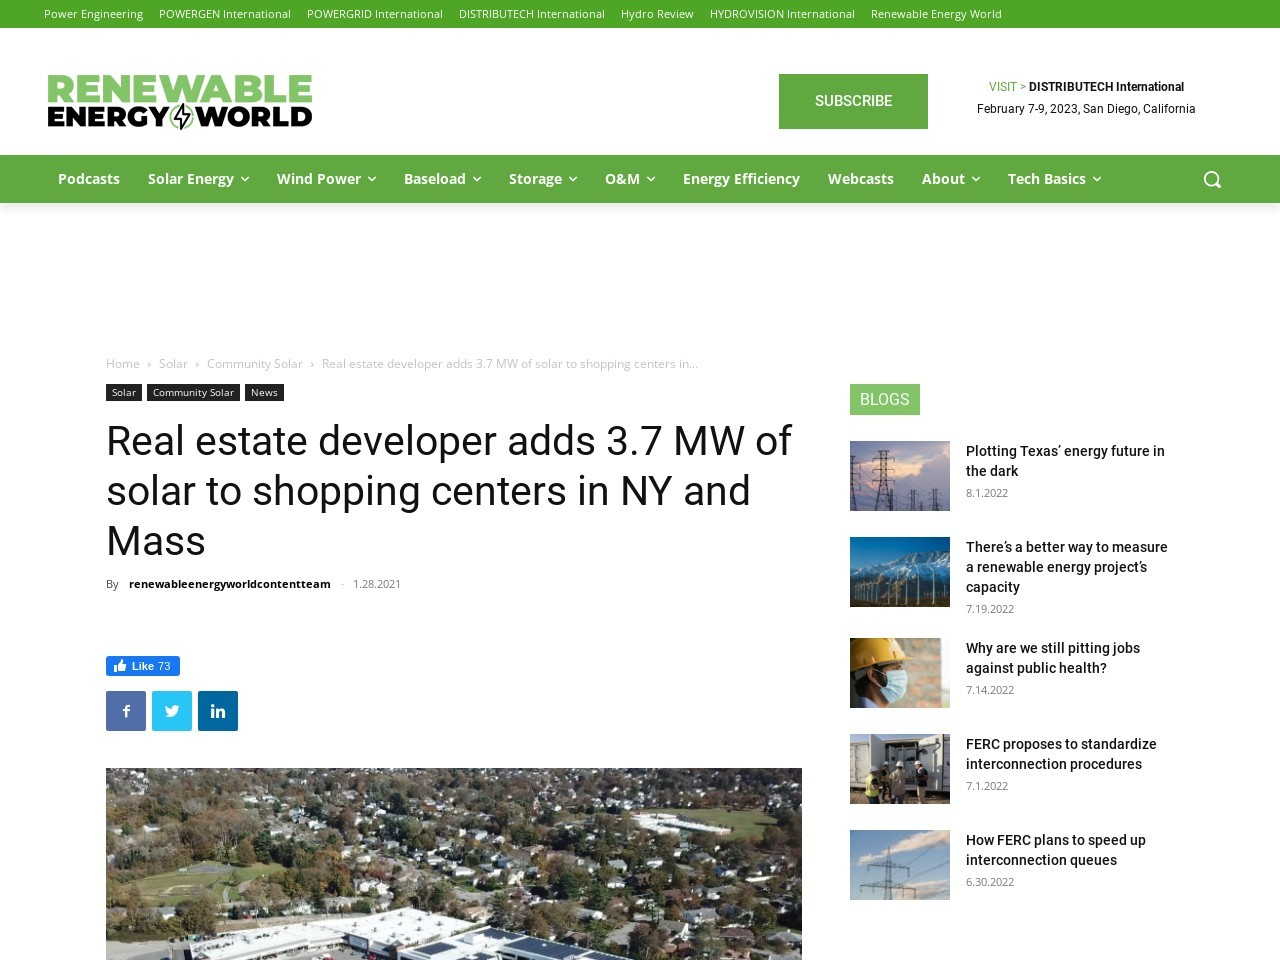 Real estate developer adds 3.7 MW of solar to shopping centers in NY and Mass